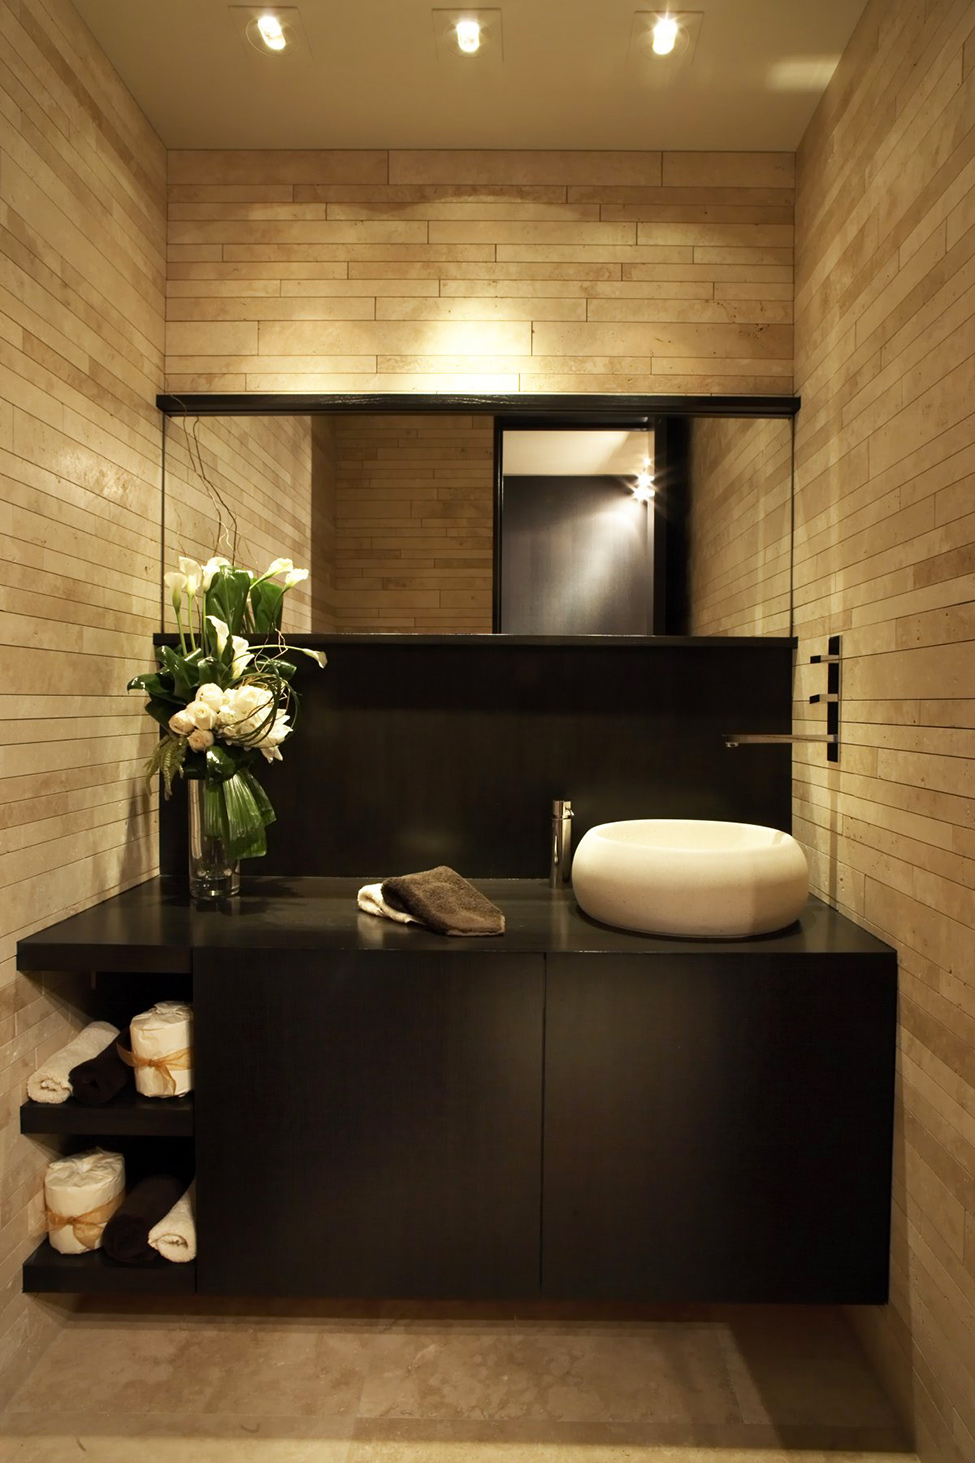 Luxury Apartment With Integrating Panoramic Window: Elegant Modern Bathroom Design With Light Brown Marble Wall Tile And Bathroom Vanities